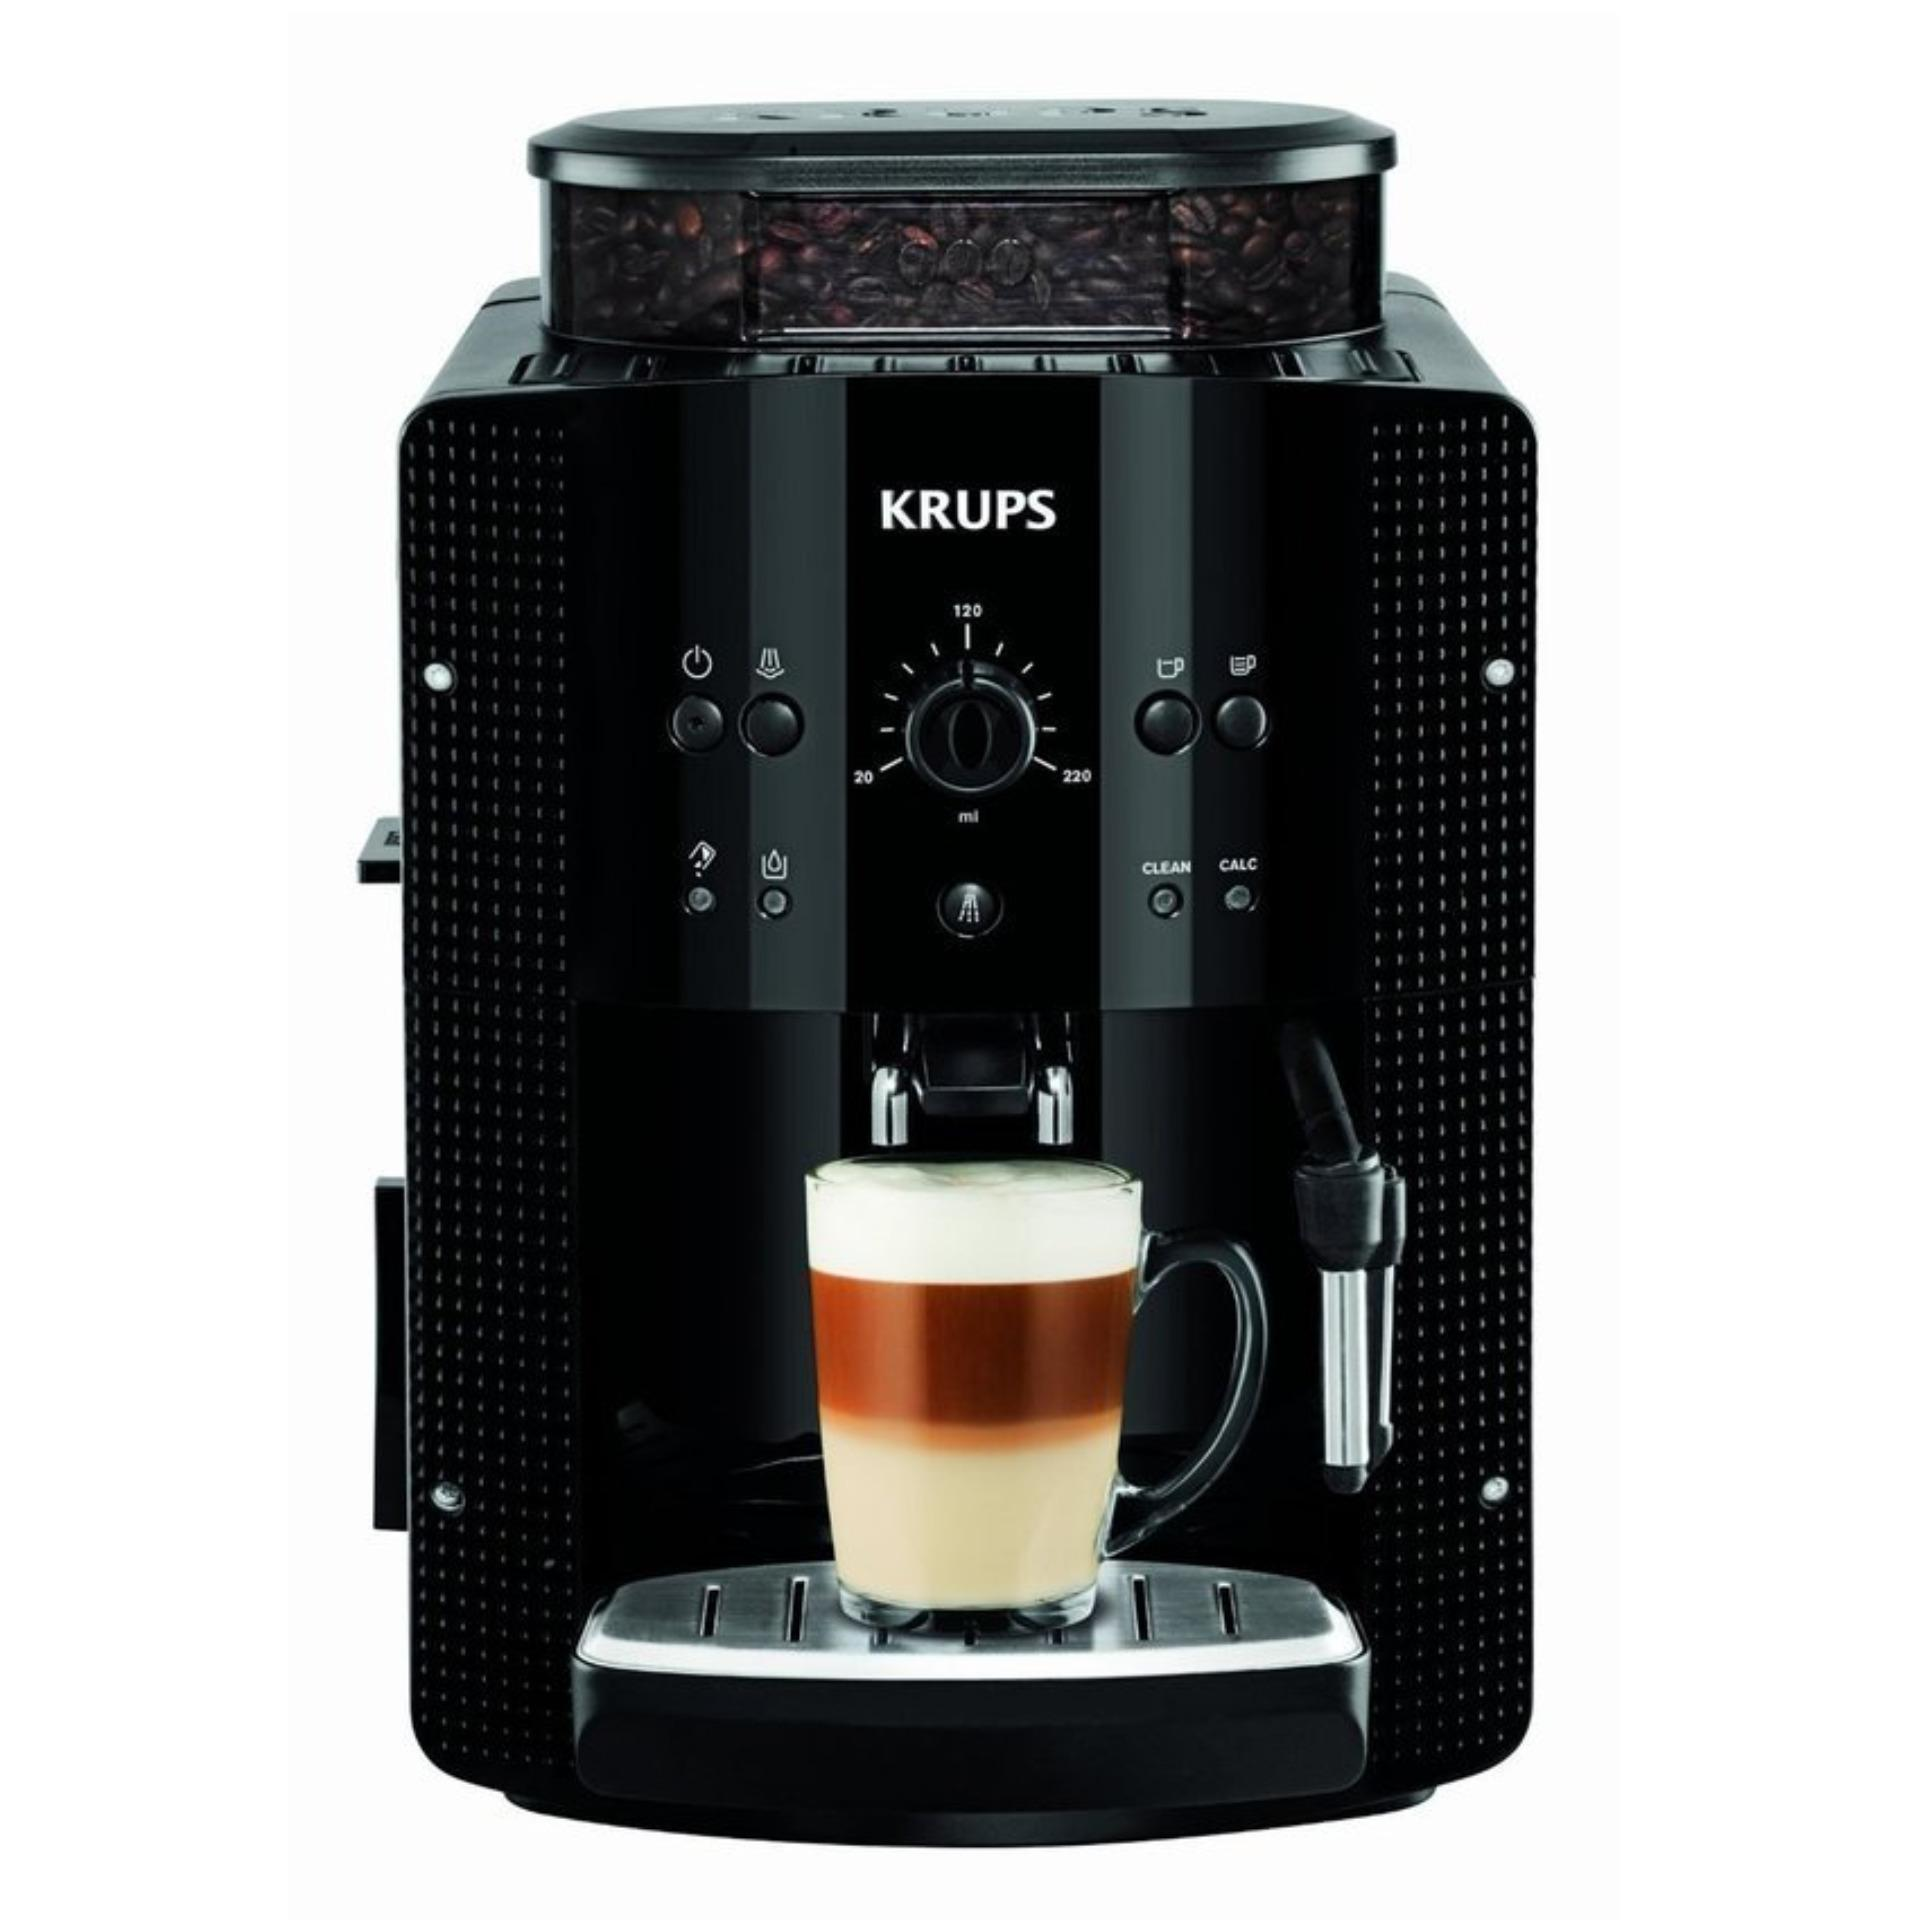 Sale Krups Ea8108 Espresso Full Automatic Essen Coffee Machine Krups On Singapore